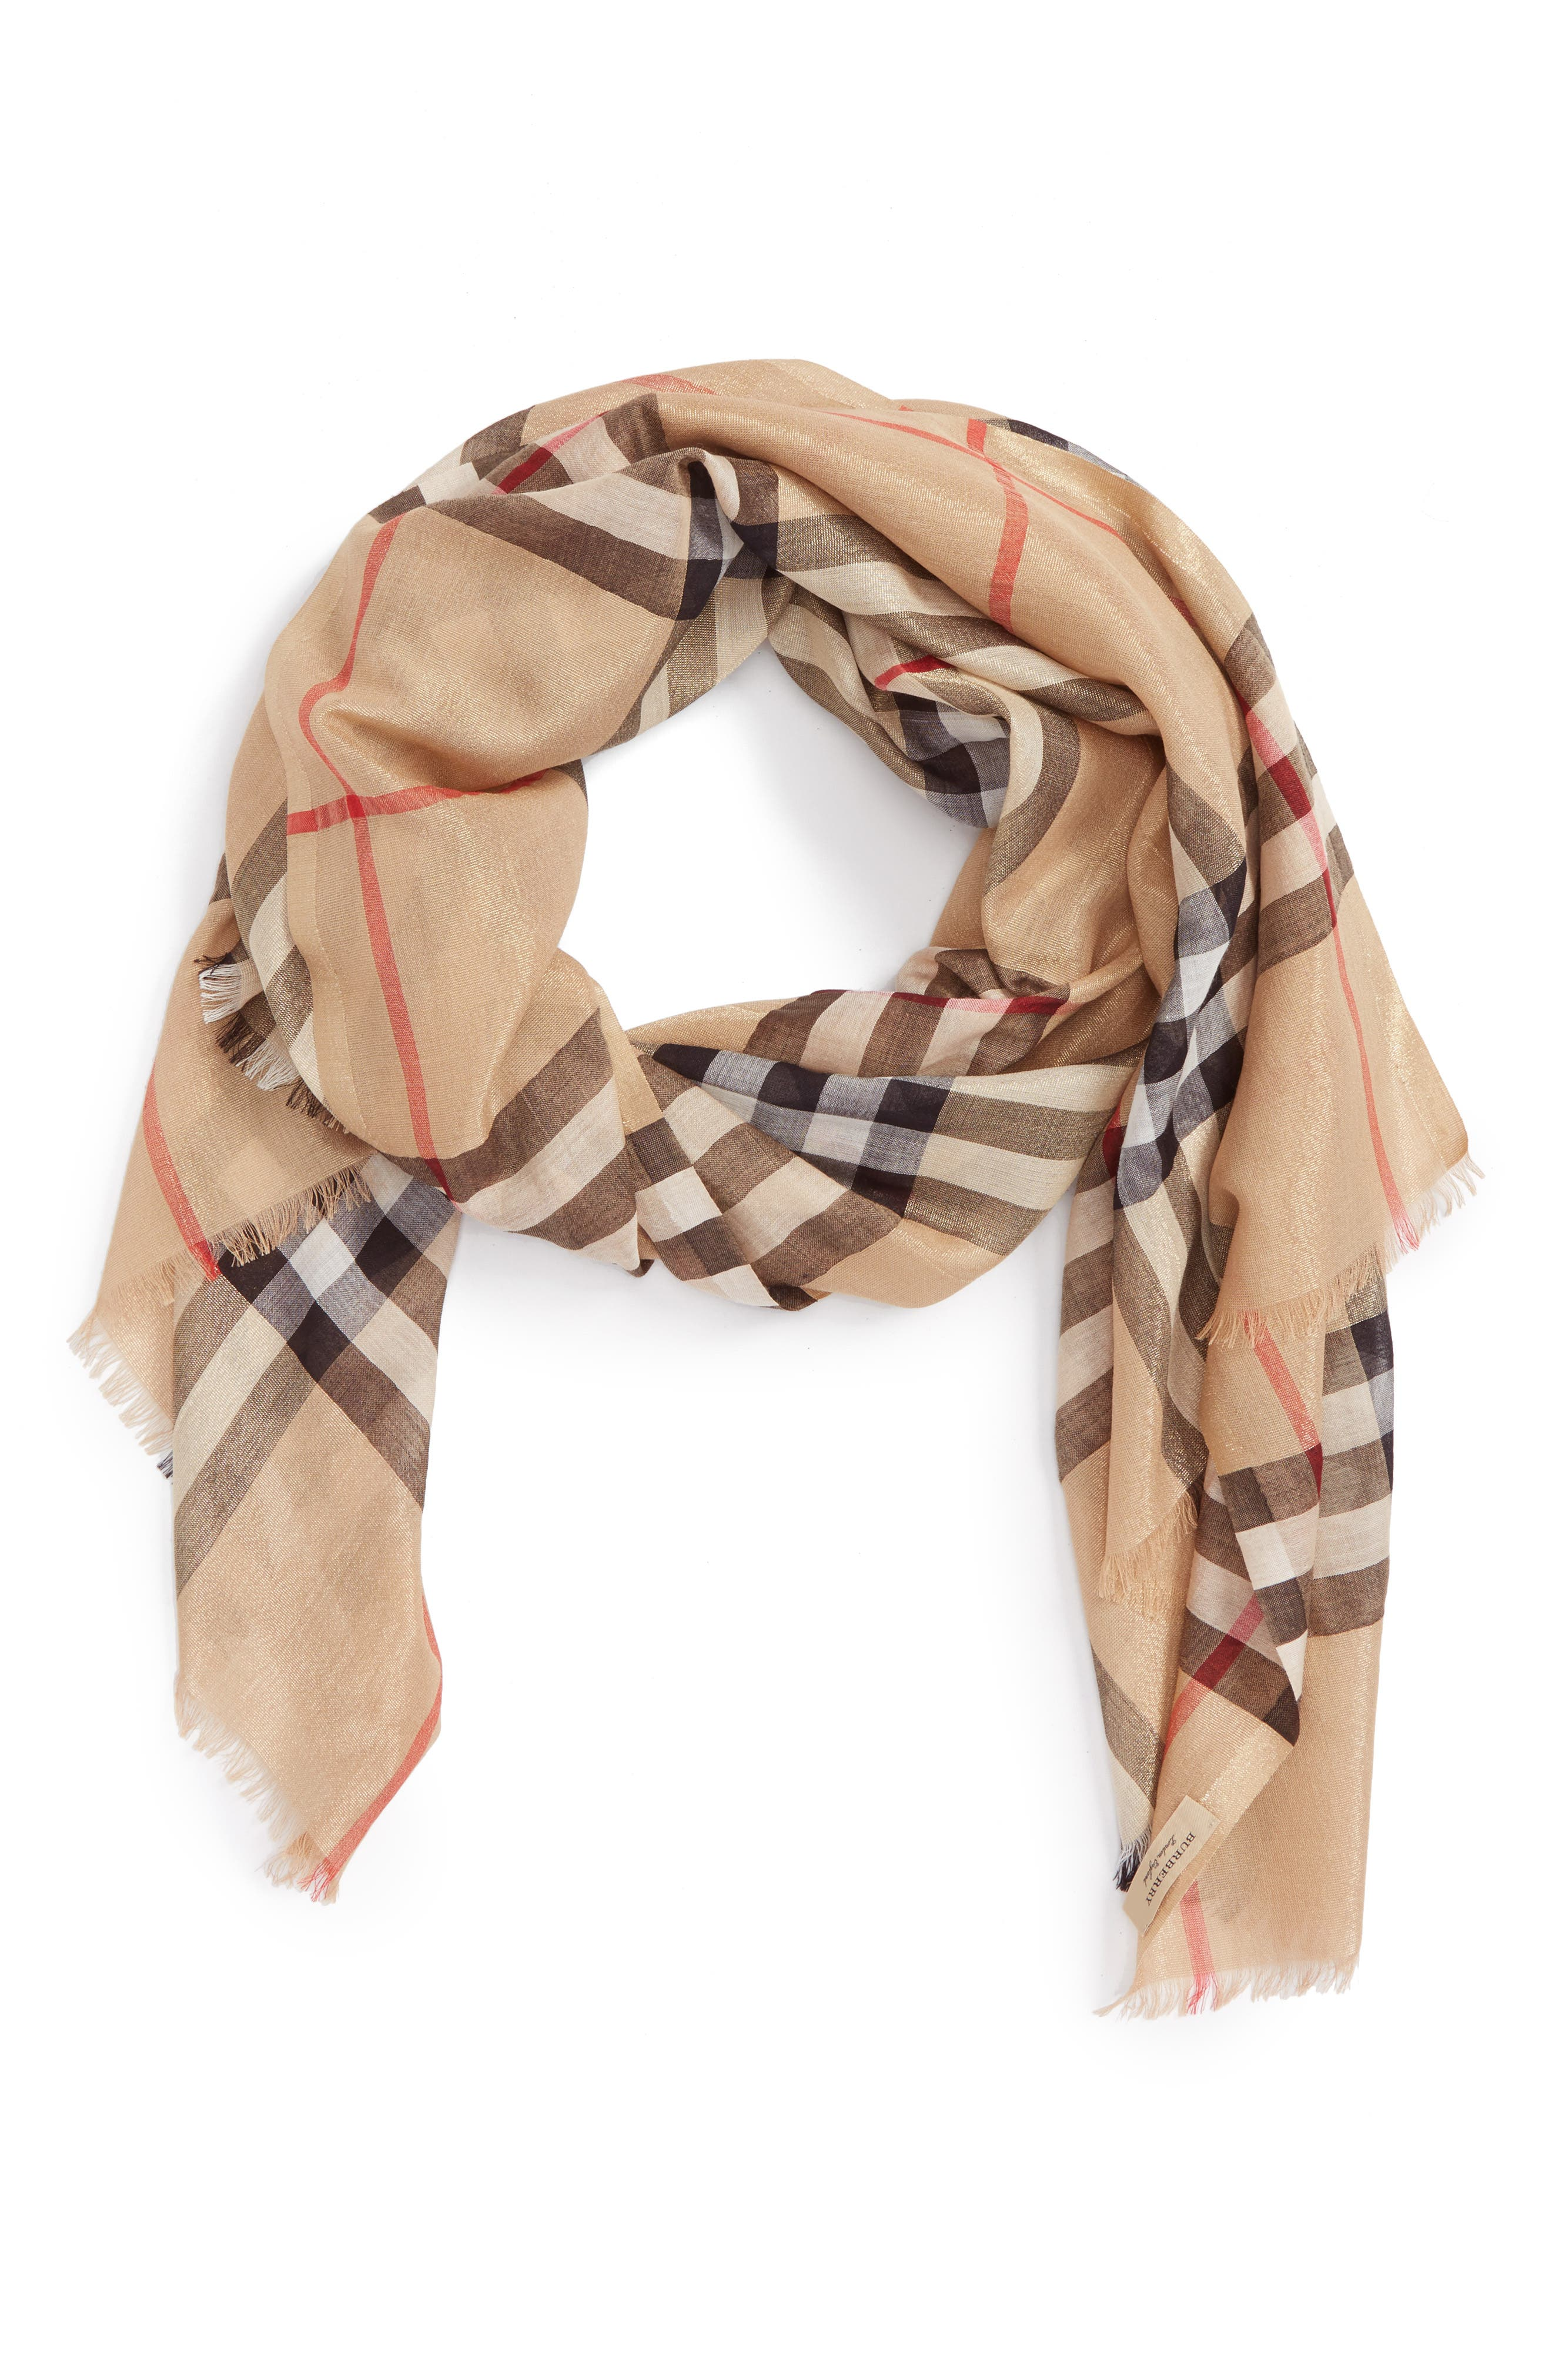 BURBERRY,                             Giant Check Scarf,                             Alternate thumbnail 3, color,                             250